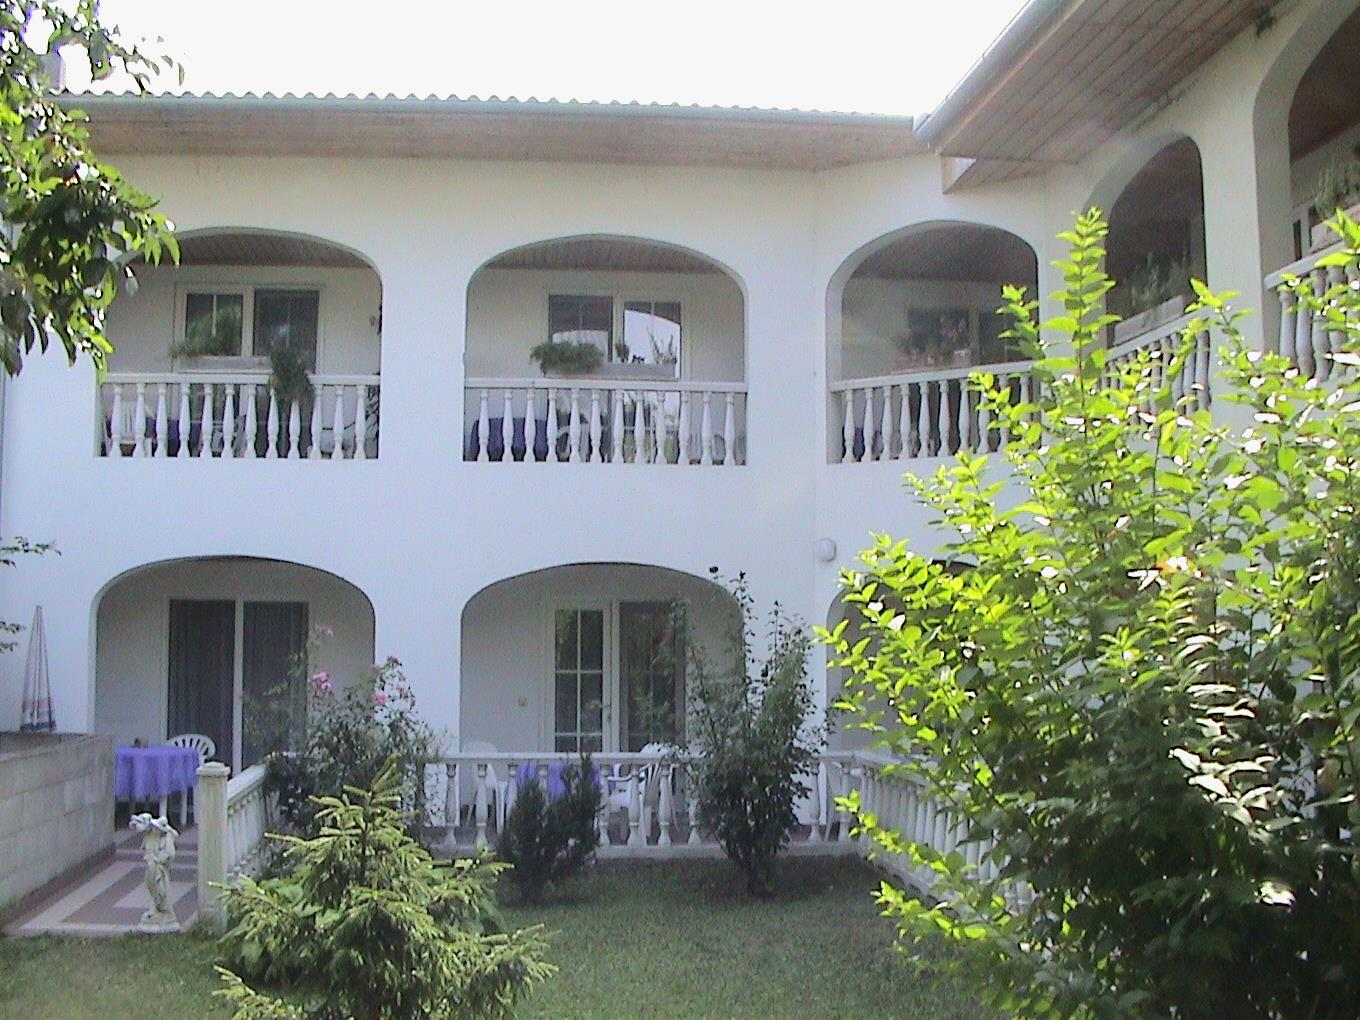 Holiday apartment Rosenhof Appartementhaus Appartement 65 m² (2008889), Podersdorf am See, Lake Neusiedl, Burgenland, Austria, picture 6